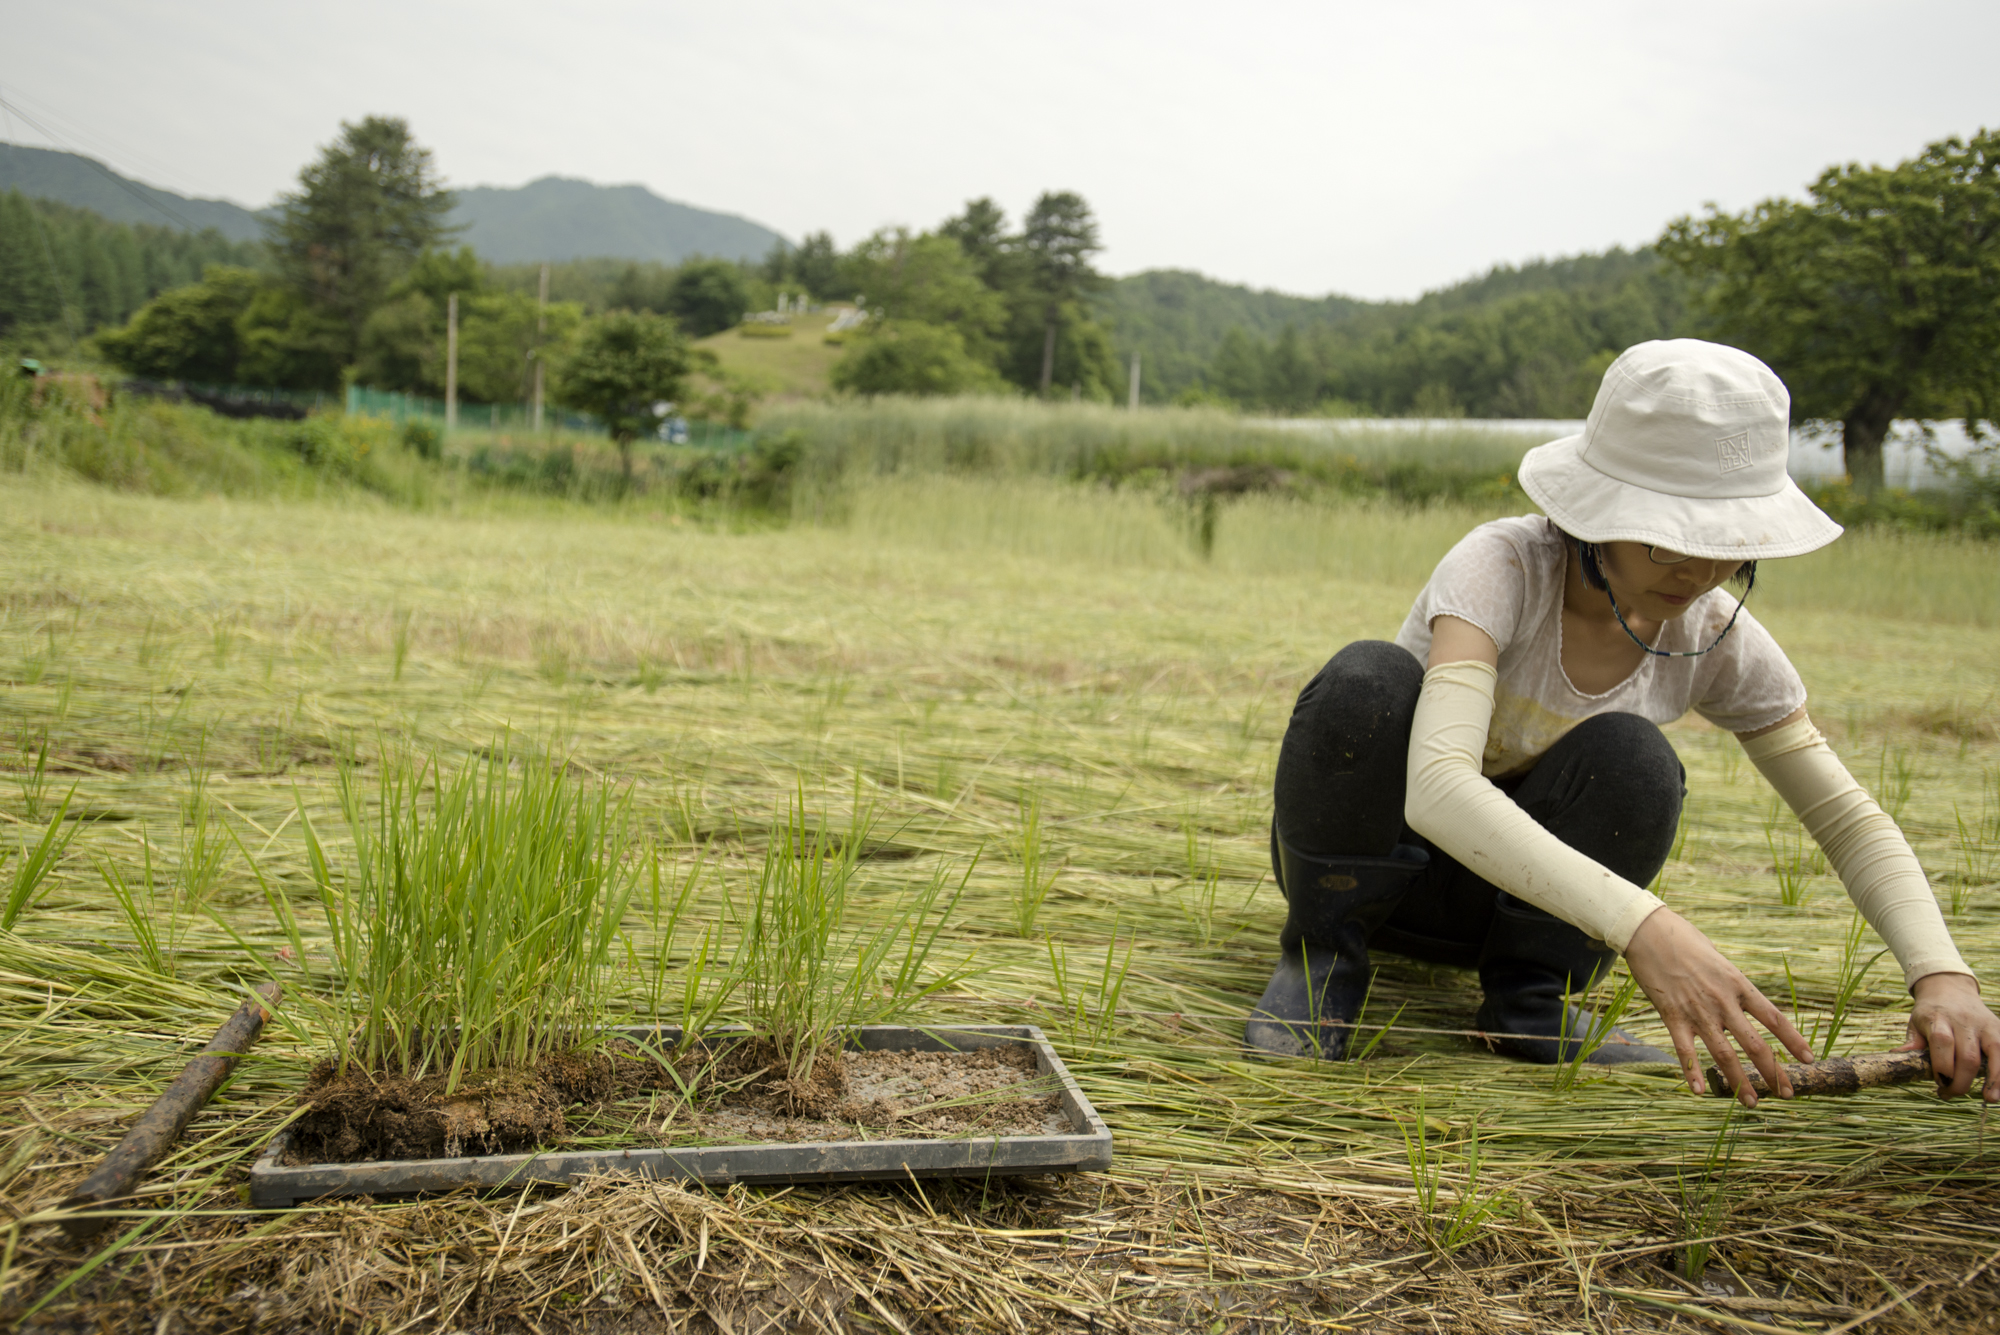 A community member working on a natural rice field in South Korea (P.M. Lydon, FinalStraw.org, CC BY-SA)